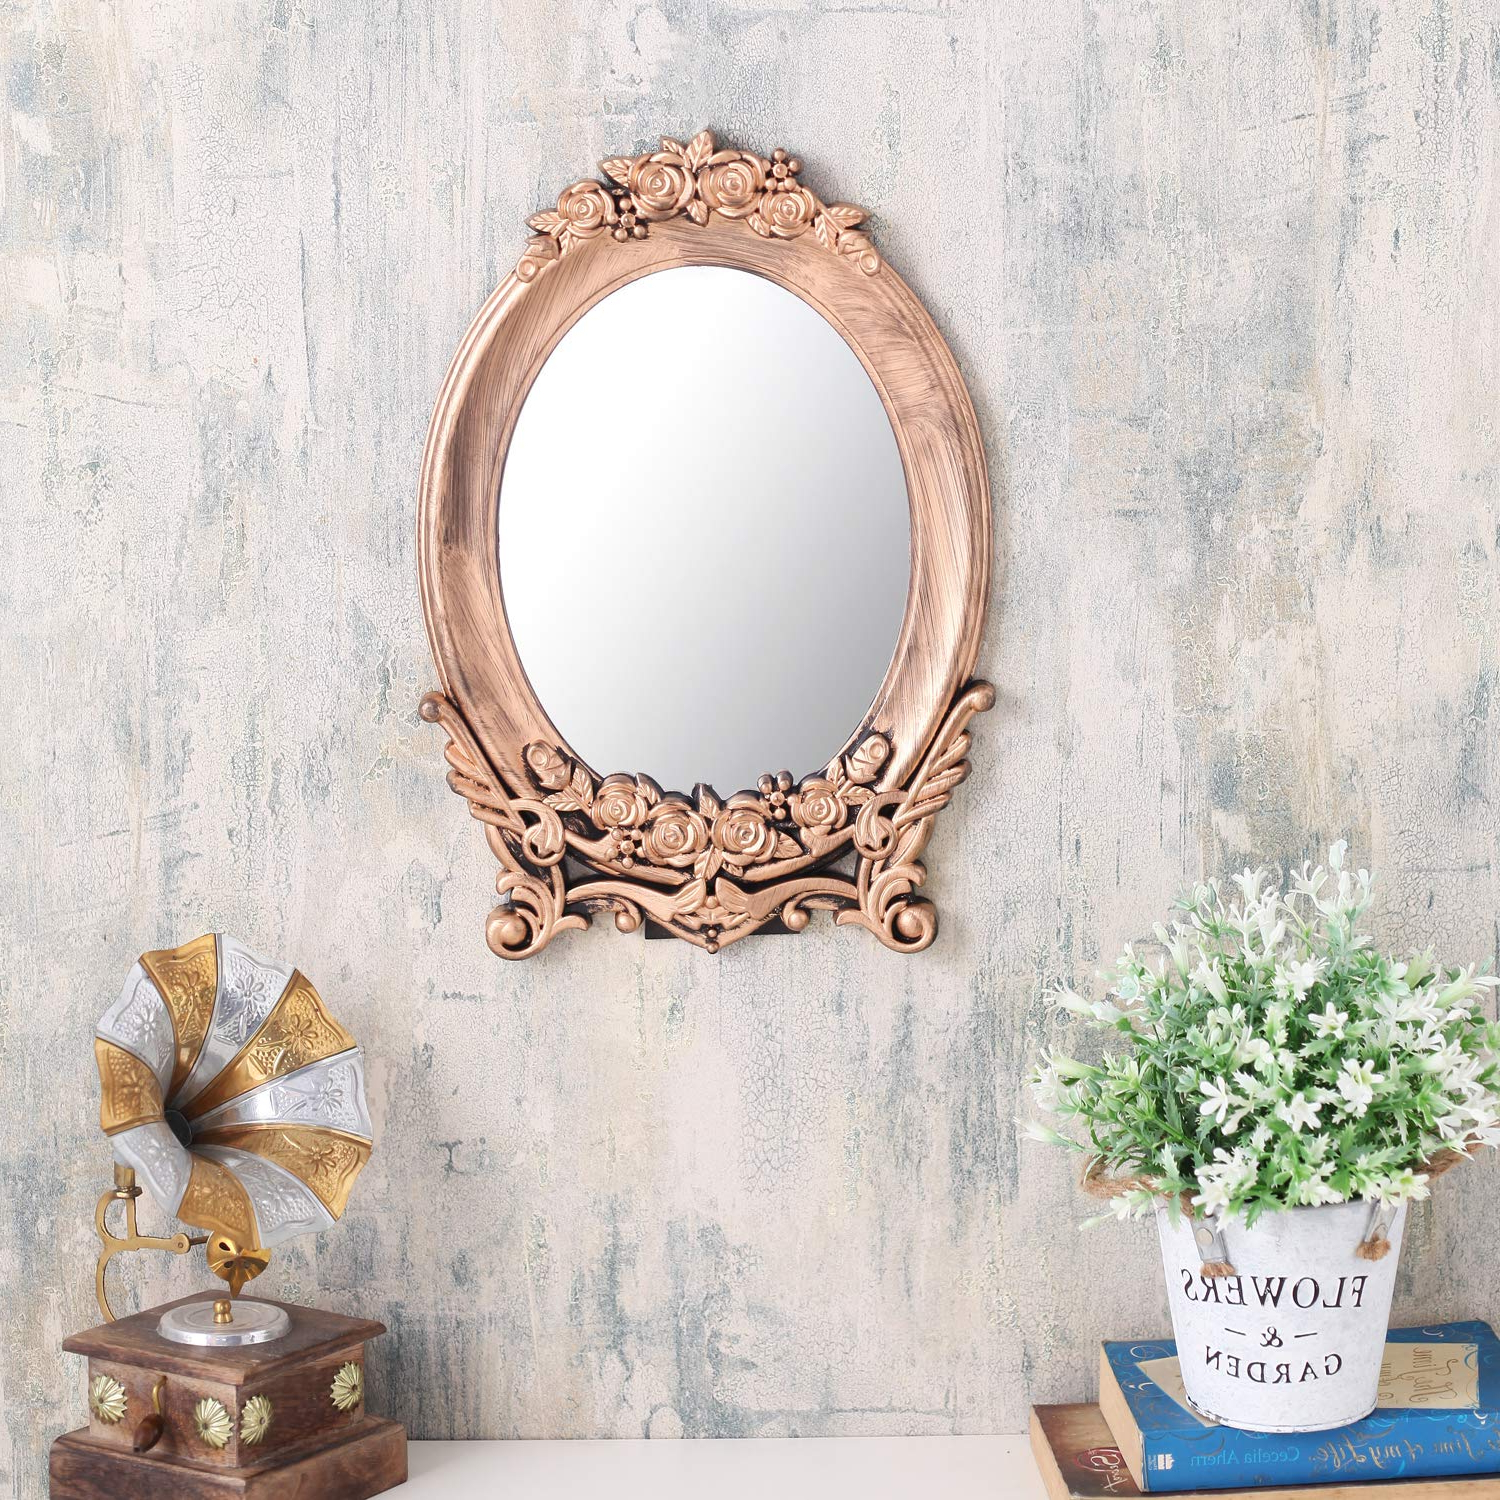 Favorite A Vintage Affair Decorative Wall Mirror Antique Hanging Design Small Size Oval For Bedroom Bathroom Living Room Office Copper Regarding Small Decorative Wall Mirrors (View 15 of 20)